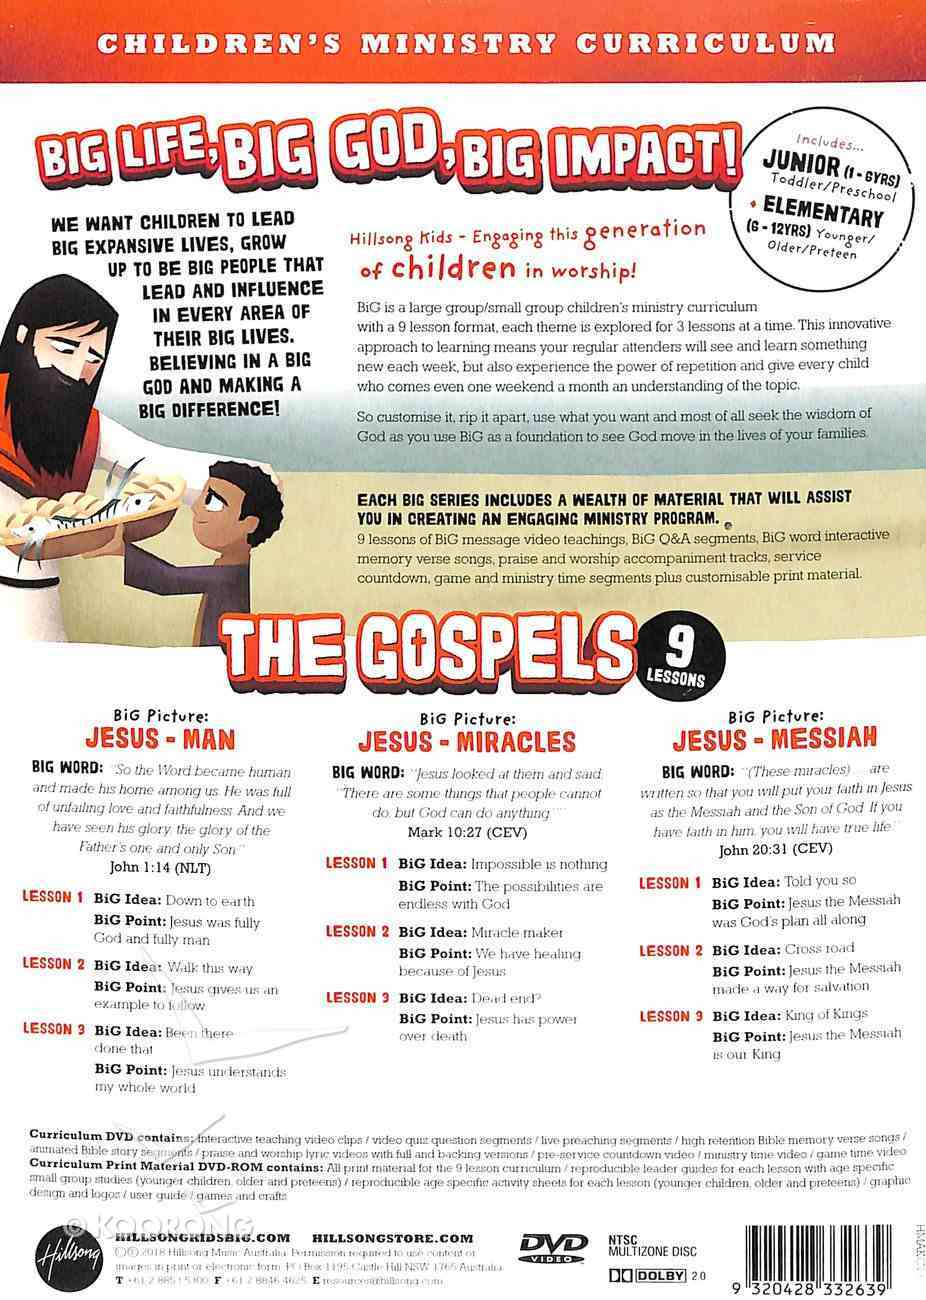 Gospels, the - Man, Miracles, Messiah (Hillsong Kids Big Curriculum Series) Pack